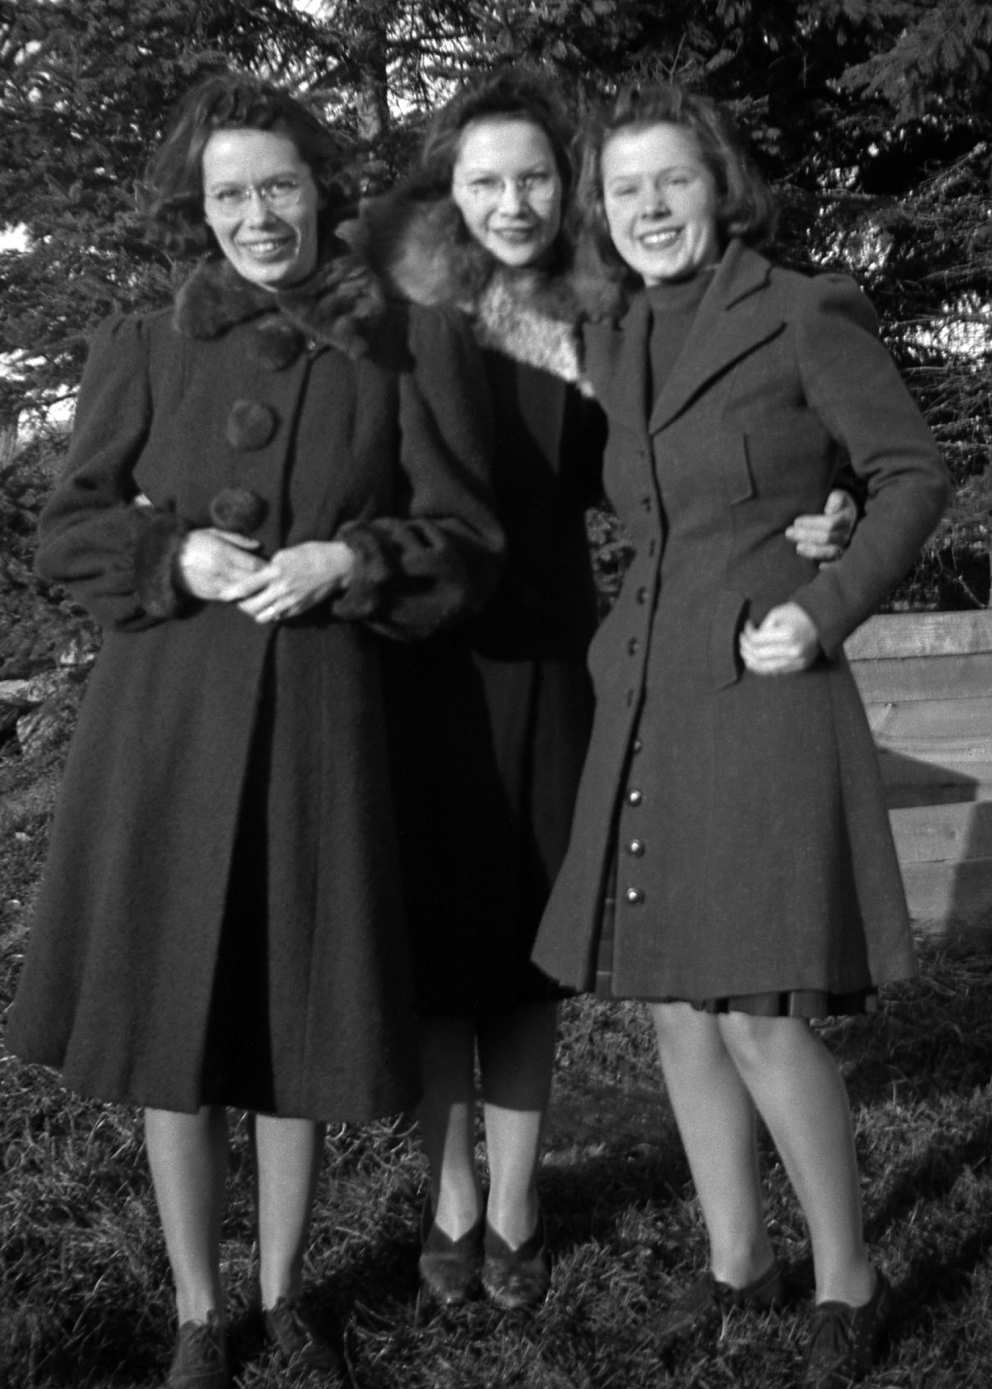 Marg, Mary and Ruth Donovan in the late 1930s